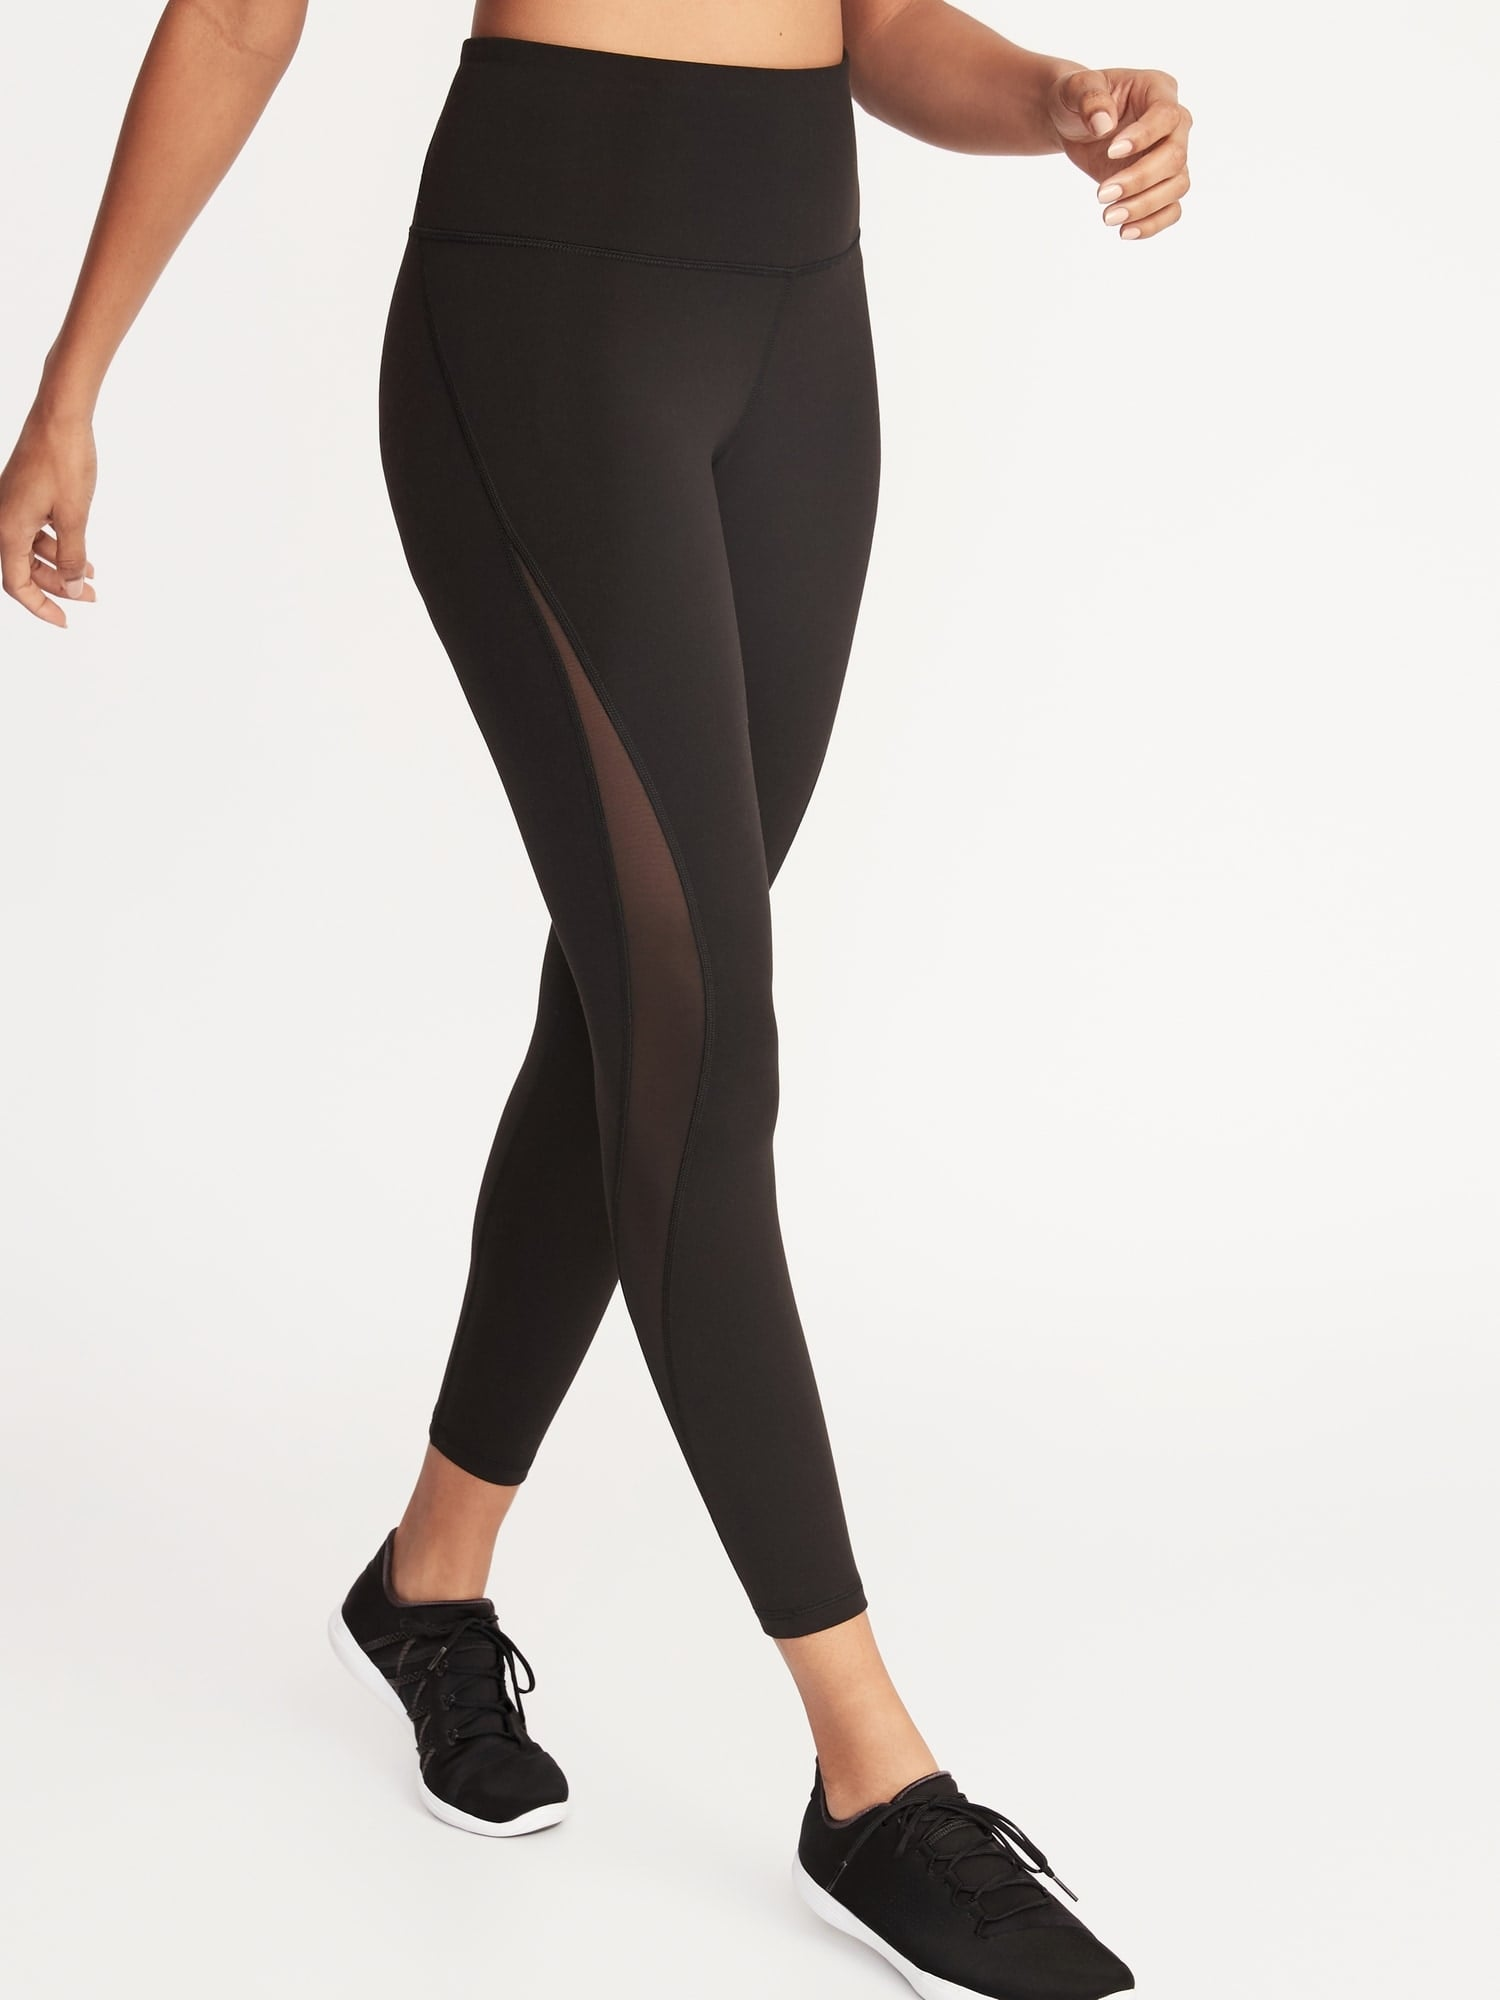 The Leggings That Will Make Your Butt Look Good Popsugar Fitness